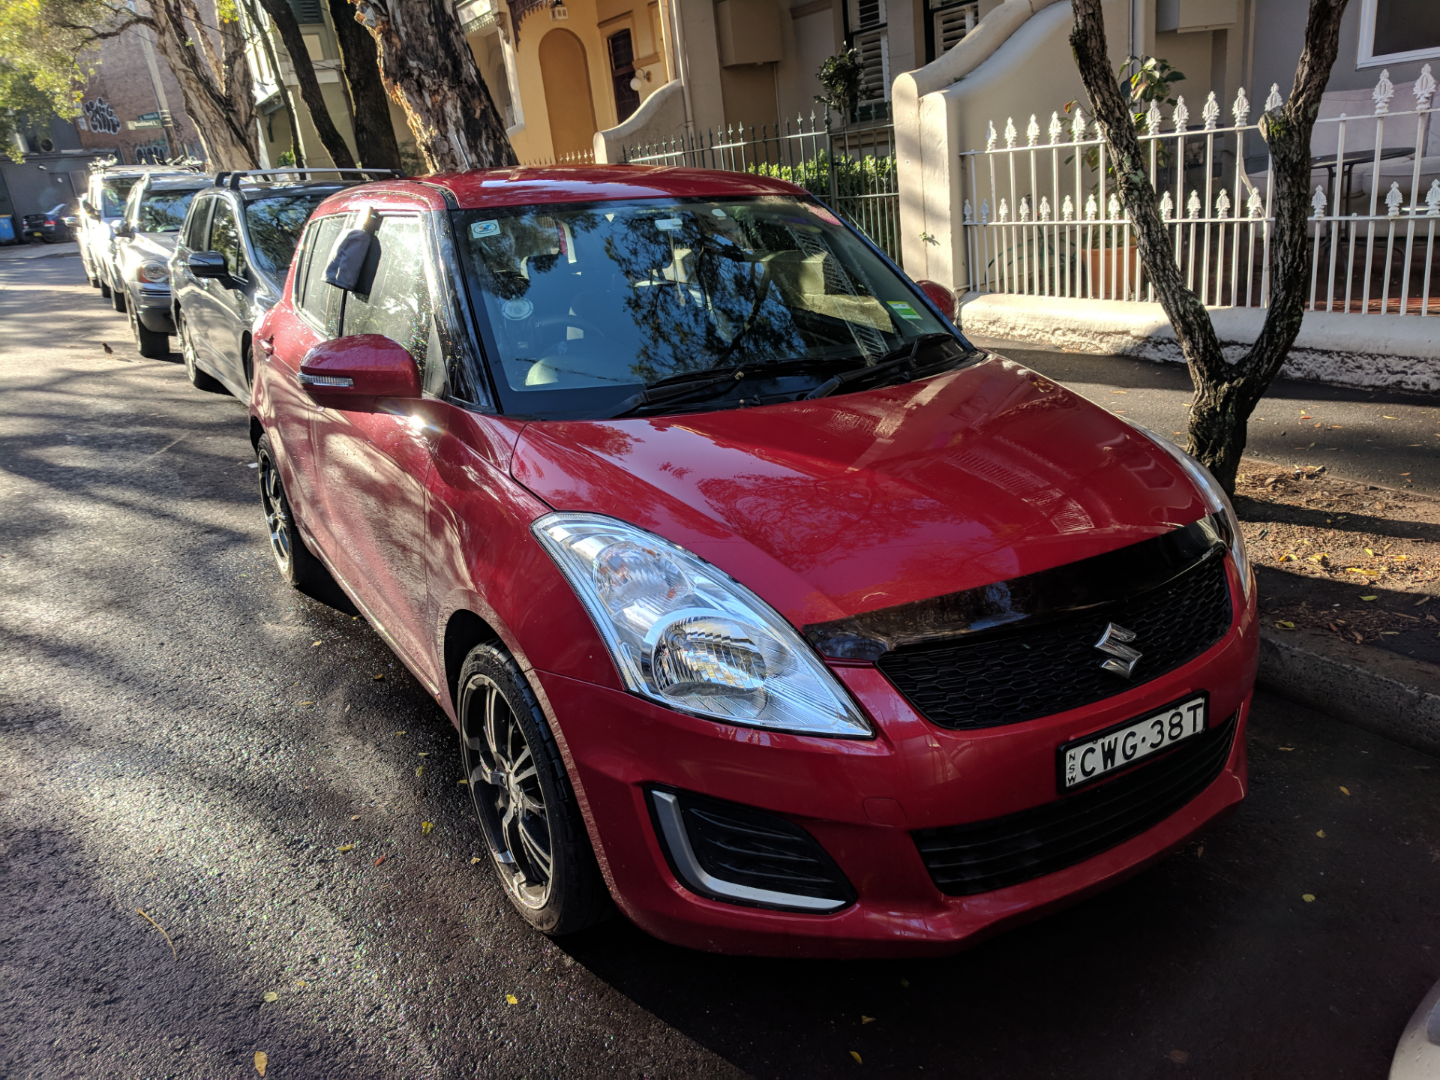 Picture of Jessica's 2014 Suzuki Swift